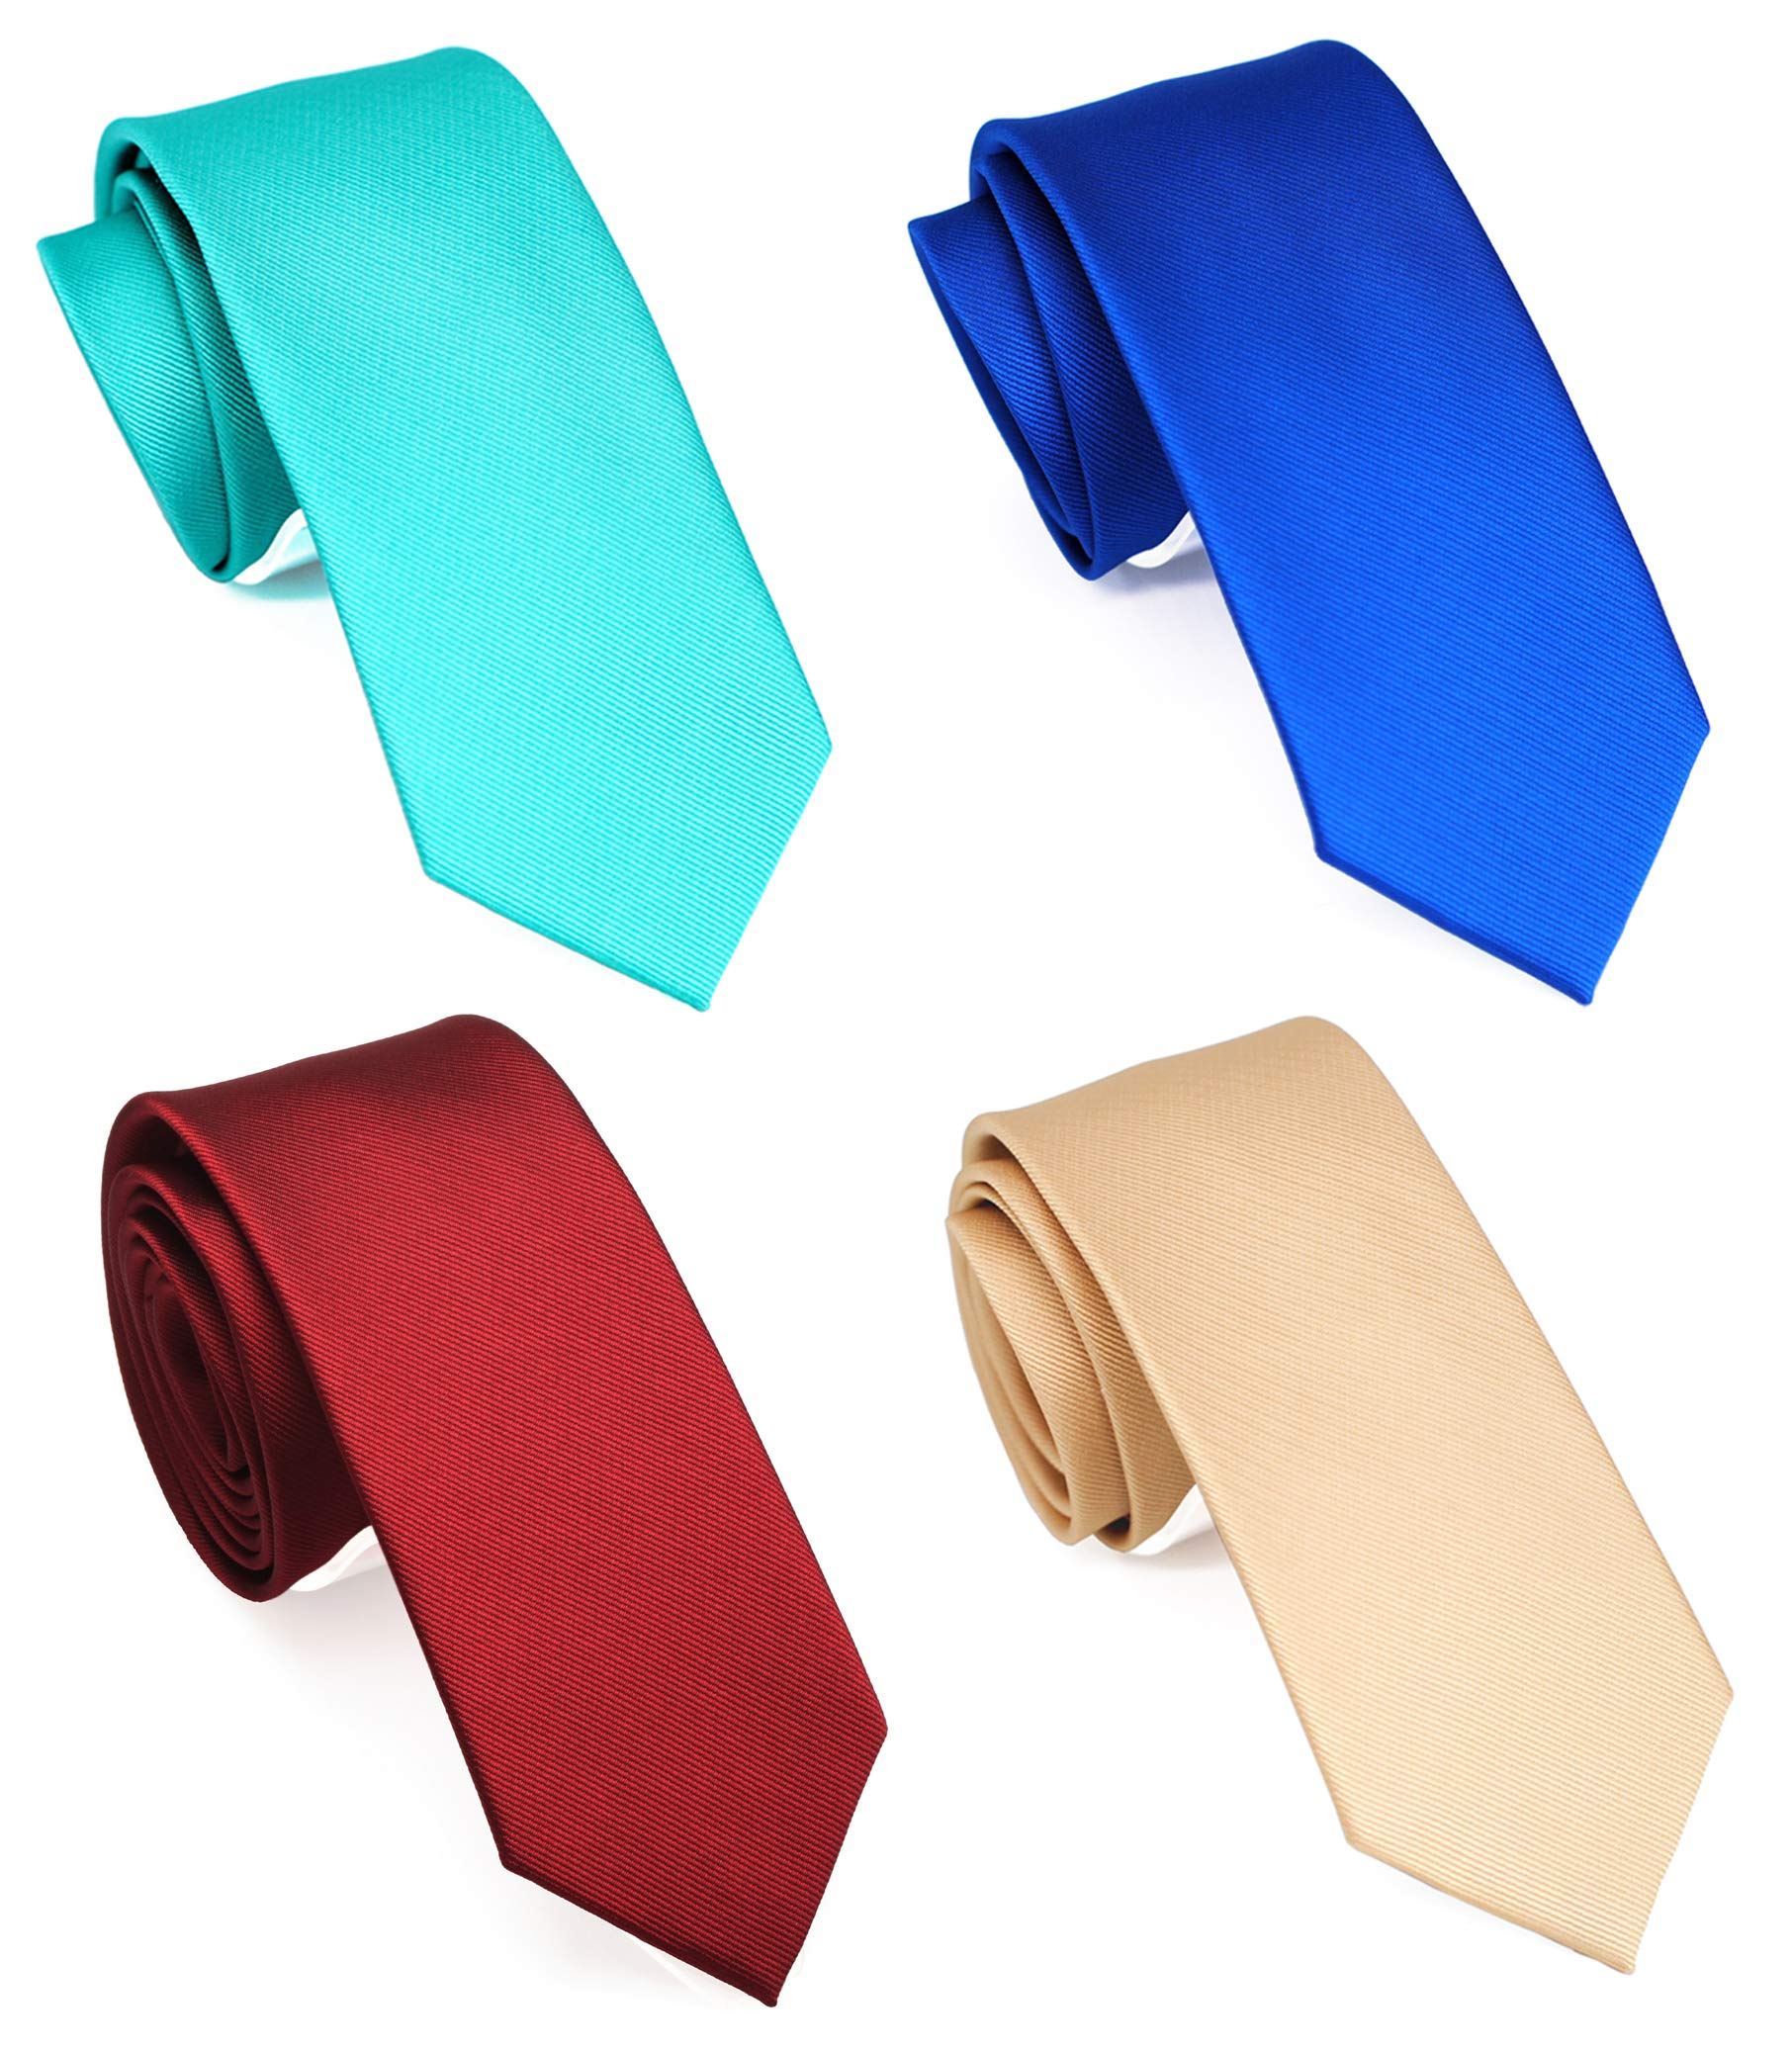 Slim Casual Ties 1//2 2 ZENXUS Cotton Skinny Neckties Check Pattern and Solid Ties Mixed Pack